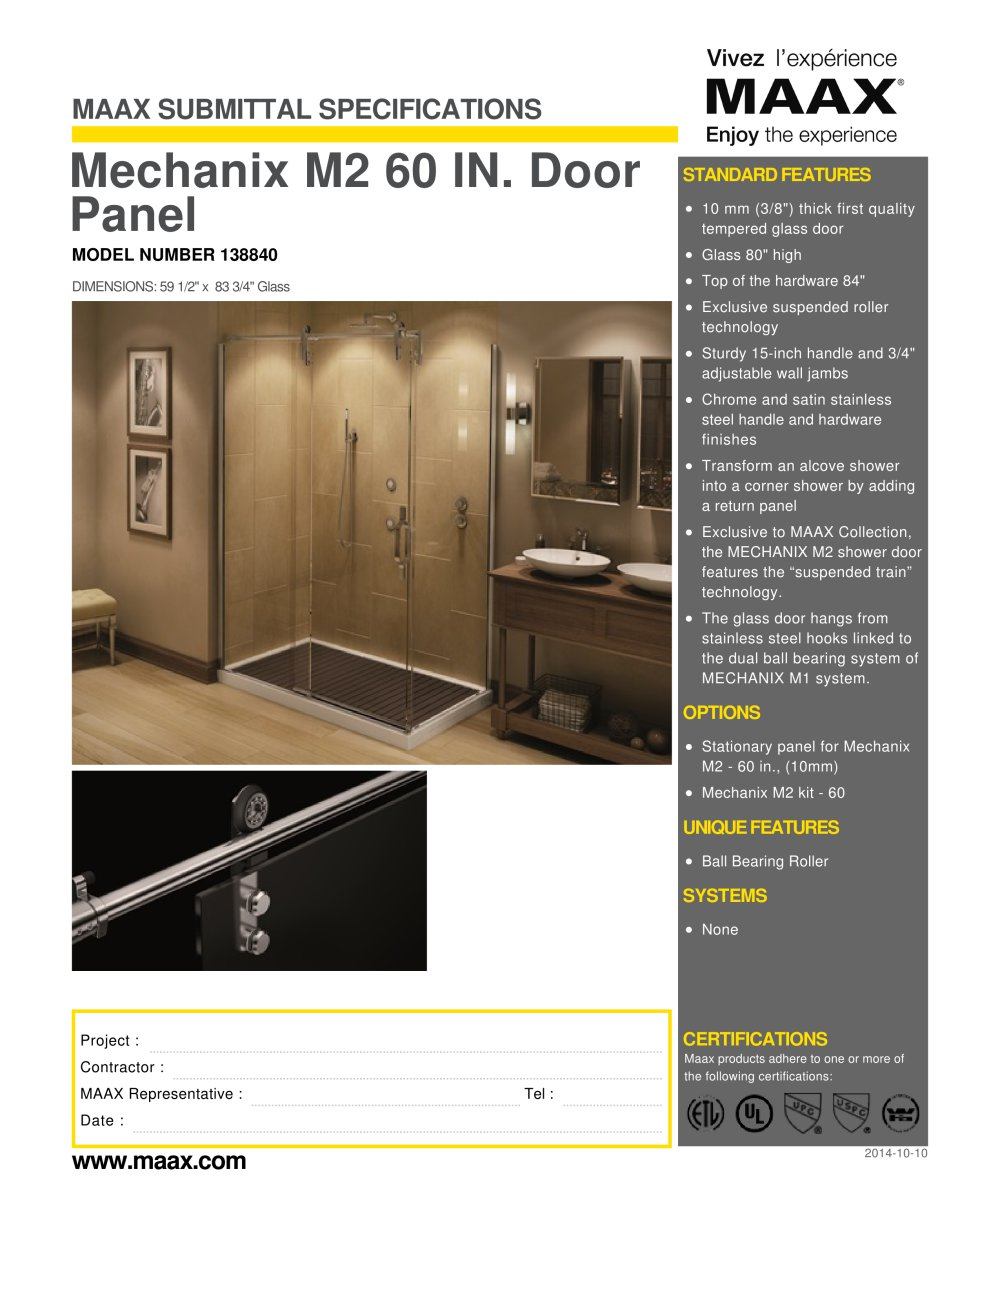 Mechanix M2 60 IN. Door Panel - MAAX bathroom - PDF Catalogues ...